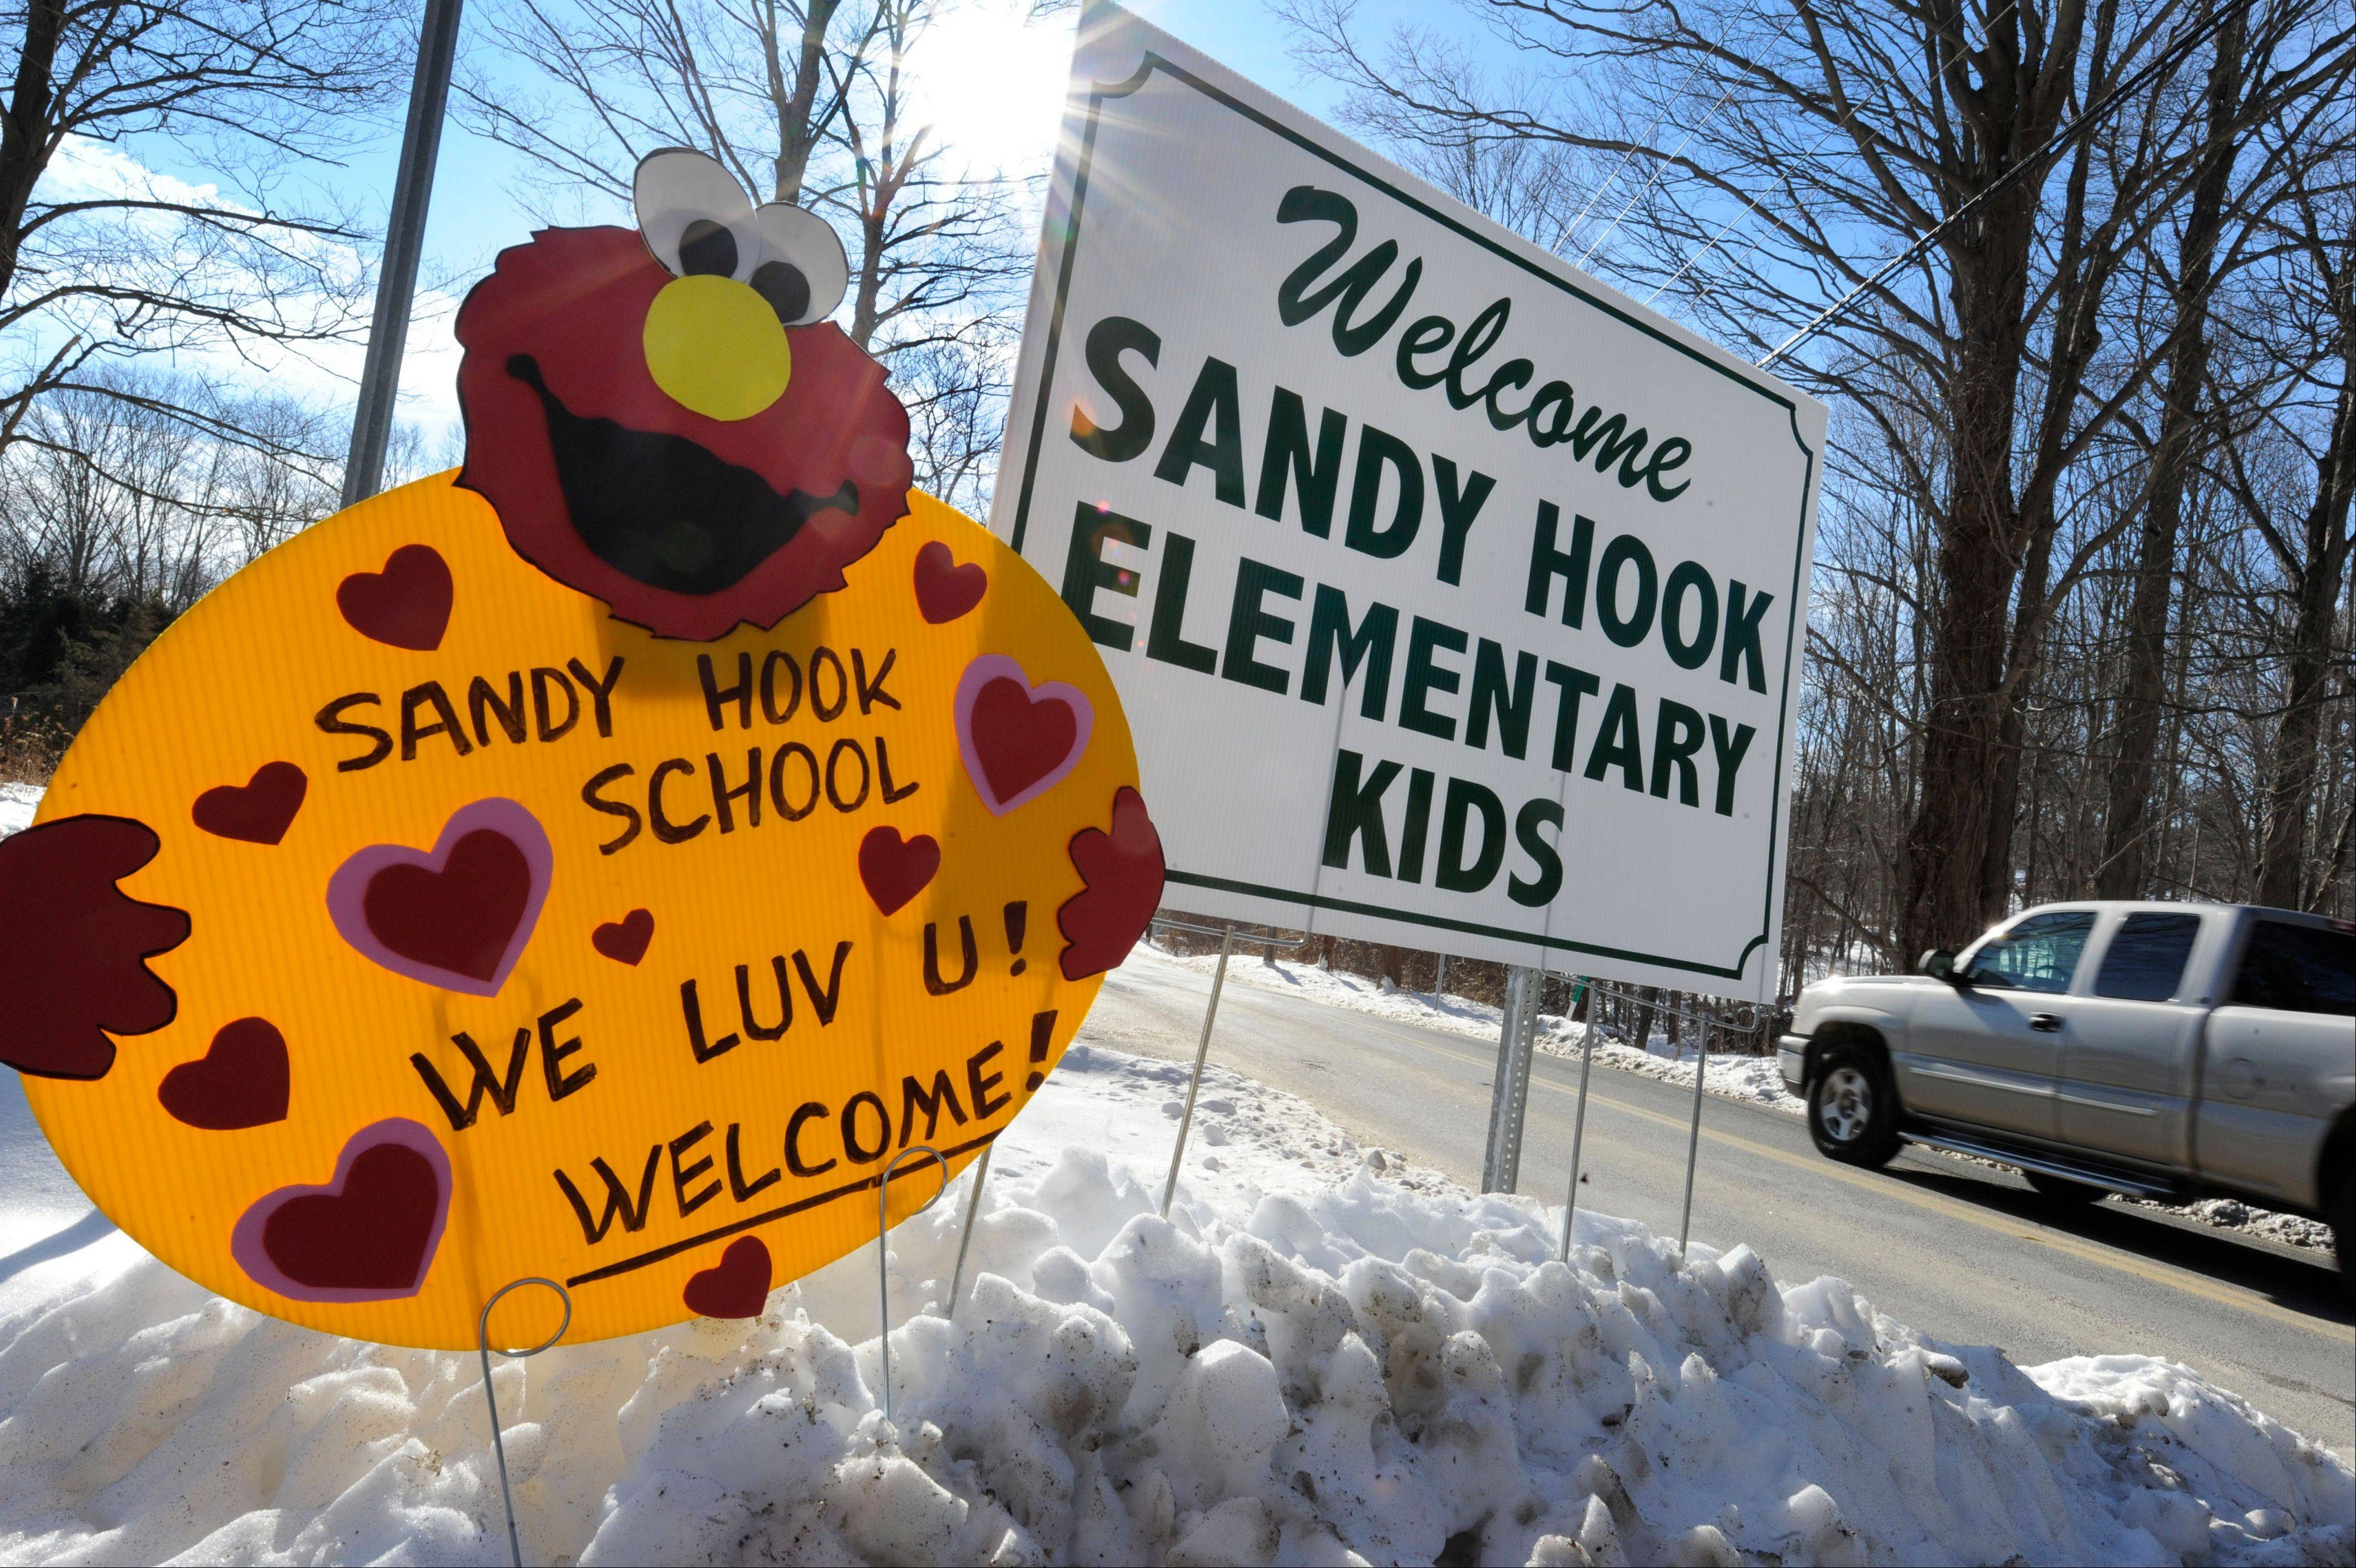 A sign Thursday welcomes Sandy Hook Elementary school children on their first day of classes near the former Chalk School in Monroe, Conn.